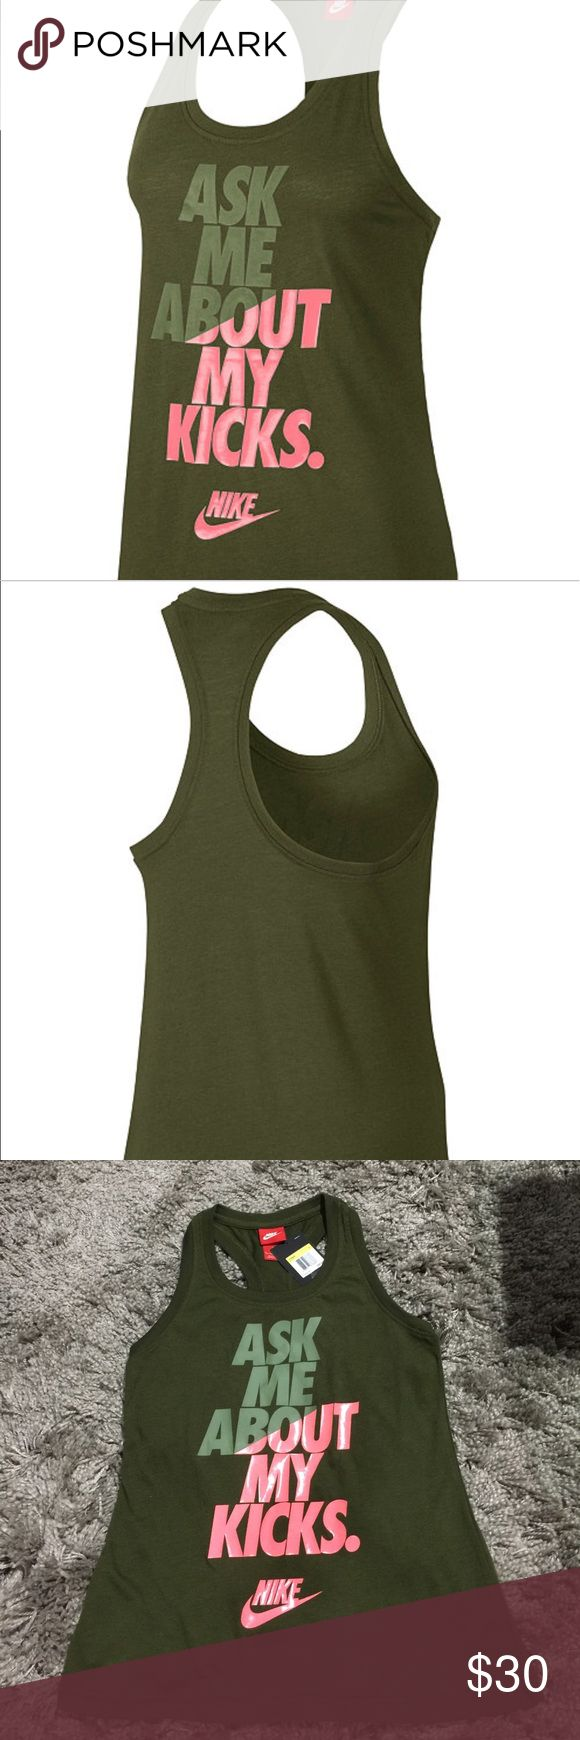 Nike Razorback Tank Comfy and casual razorback tank. New with tags Nike Tops Tank Tops